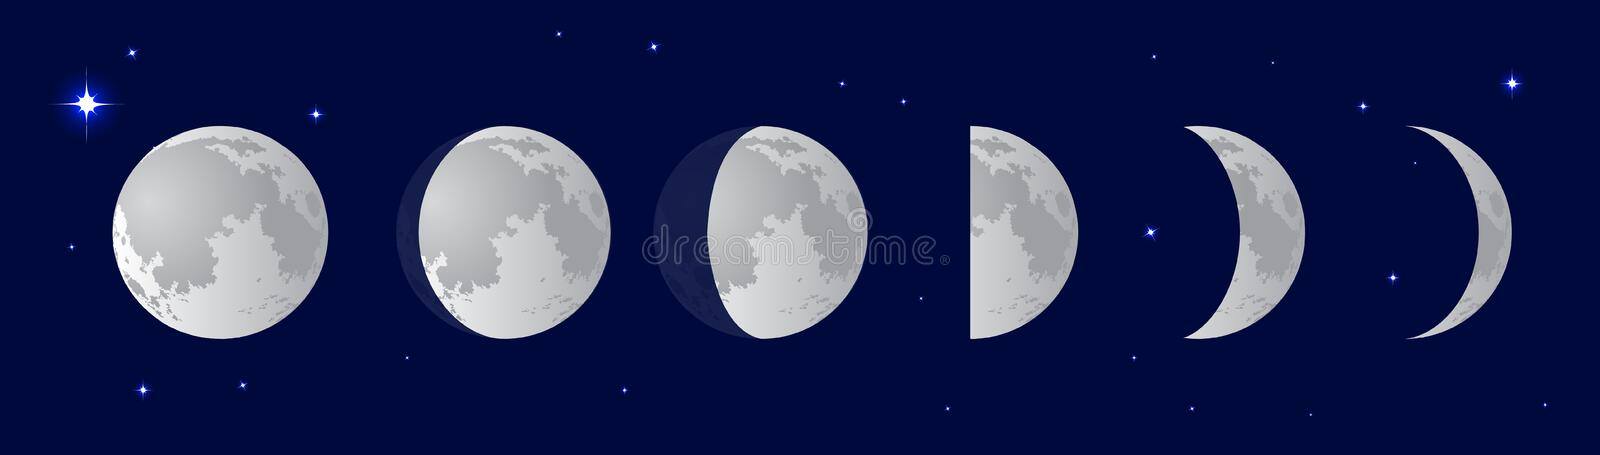 Phases de la lune illustration libre de droits